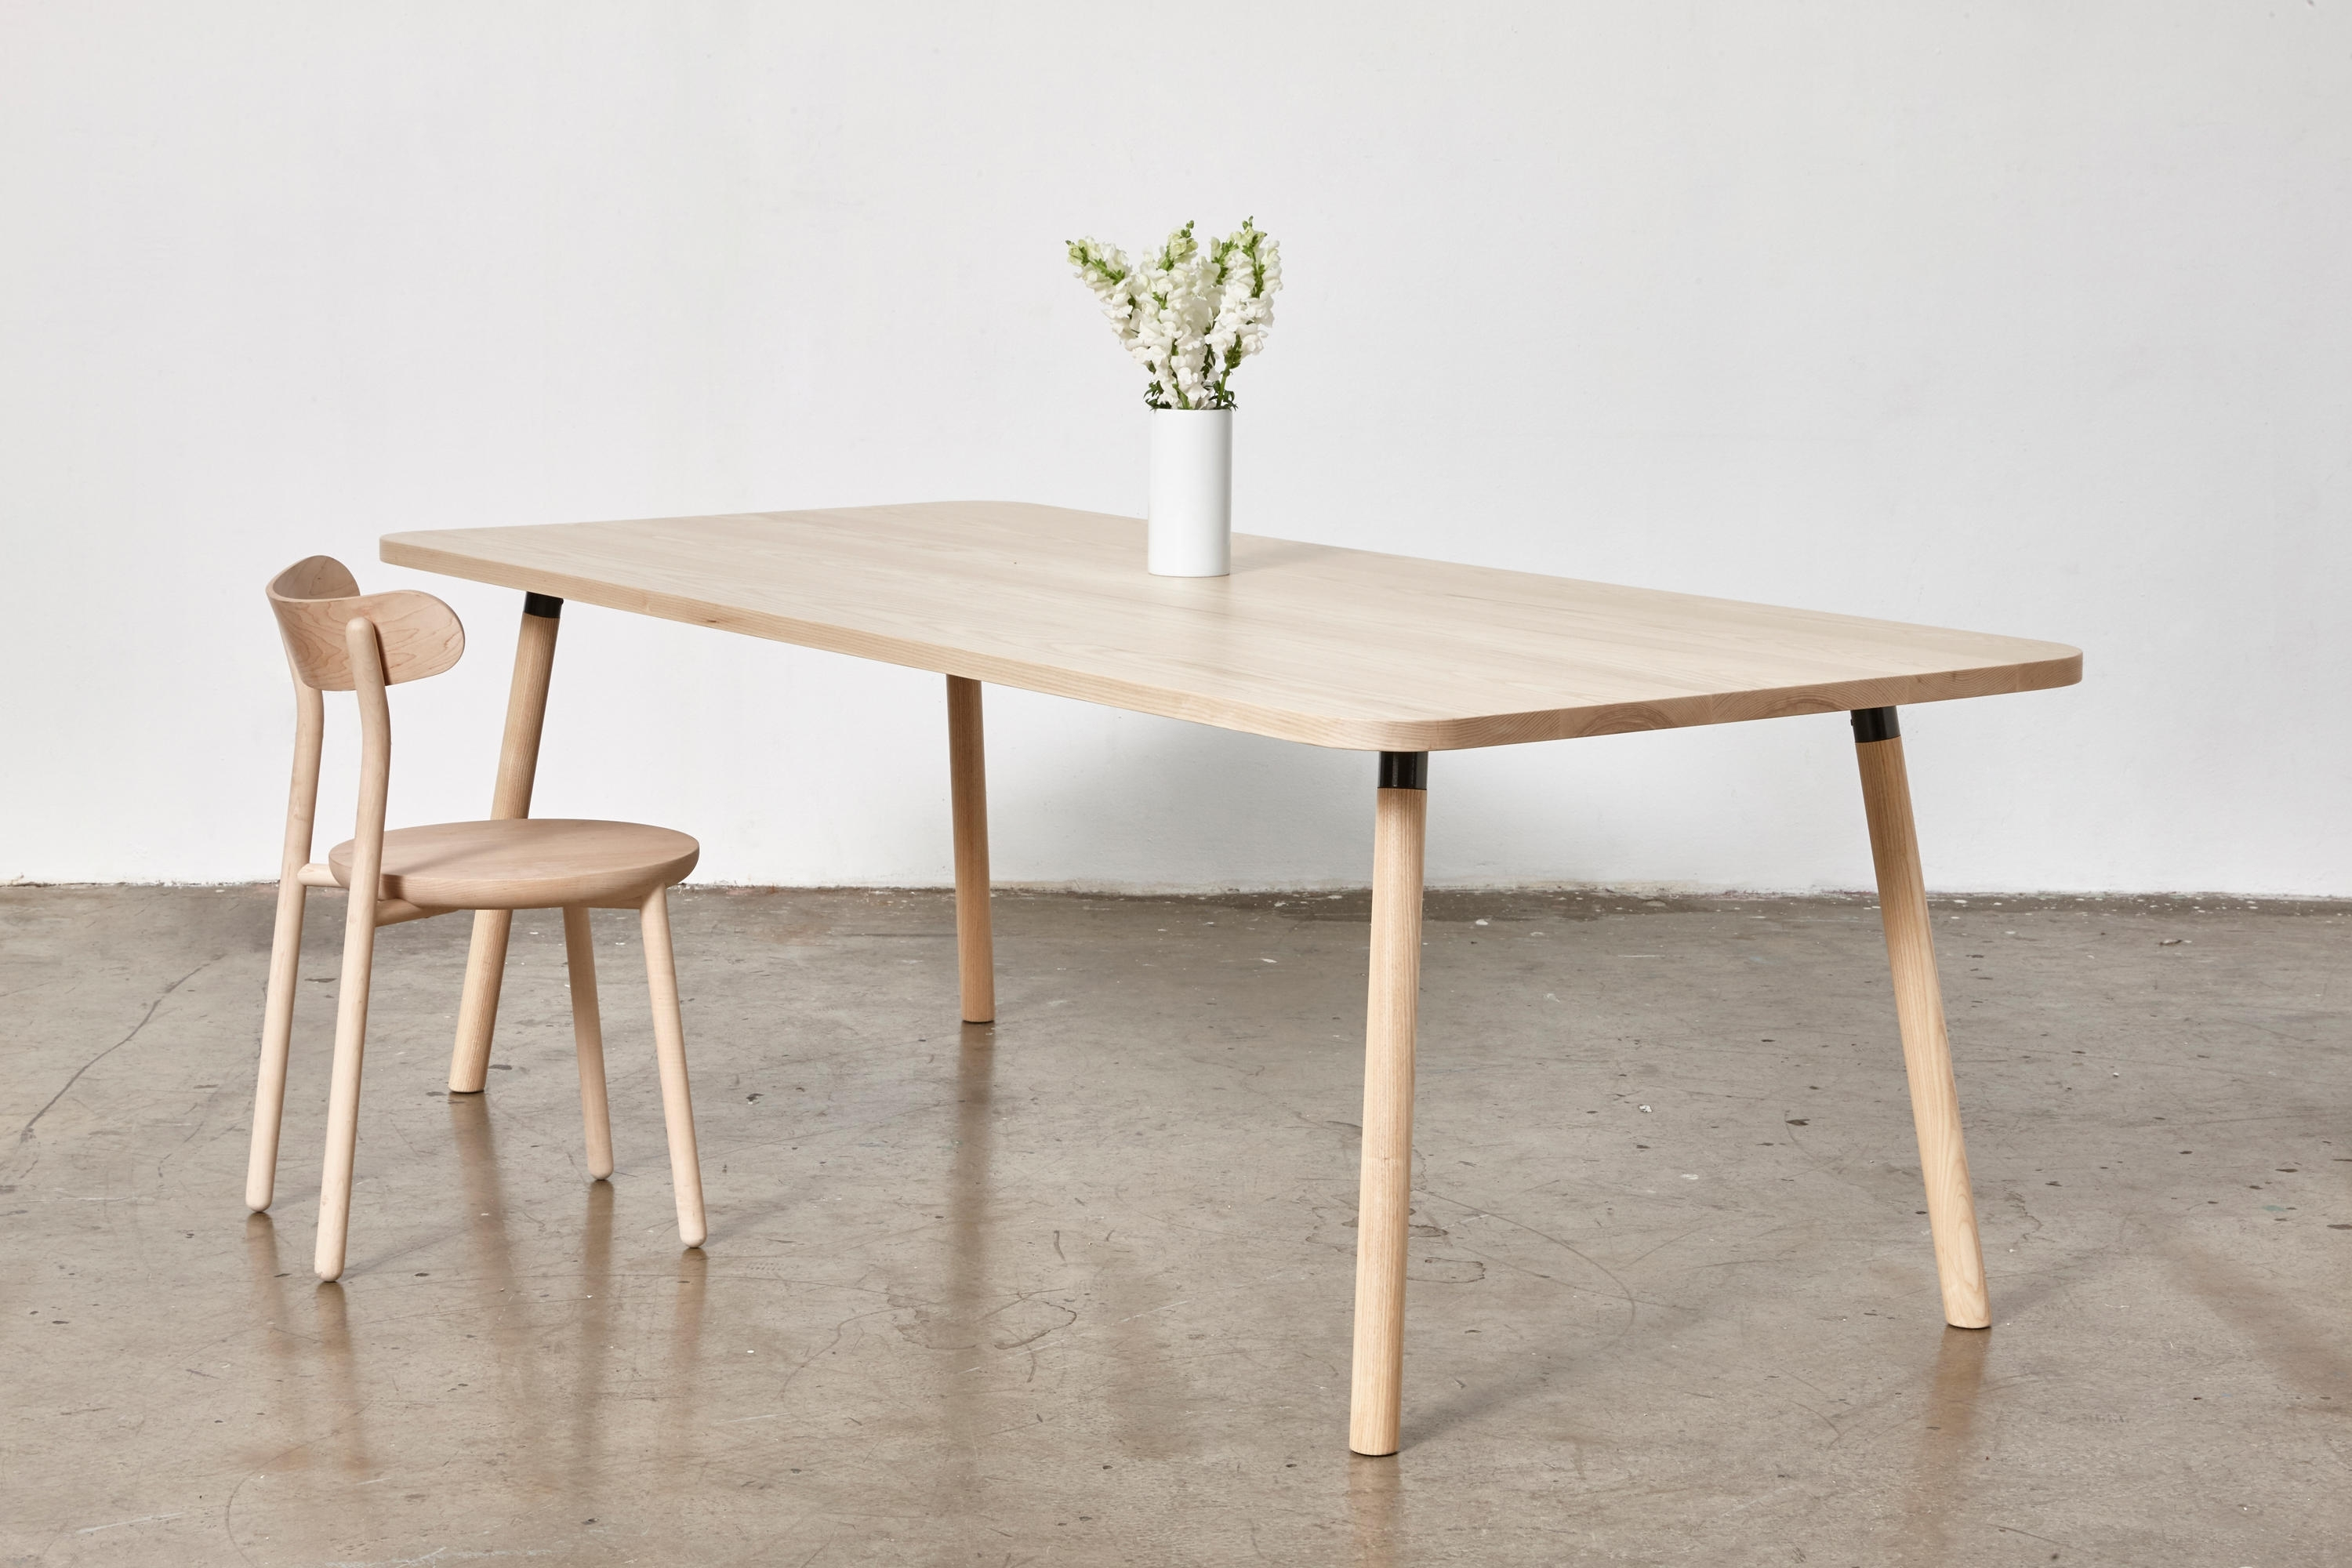 Partridge Desk – Dining Tables From Designbythem | Architonic In Most Recently Released Partridge Dining Tables (Photo 2 of 20)